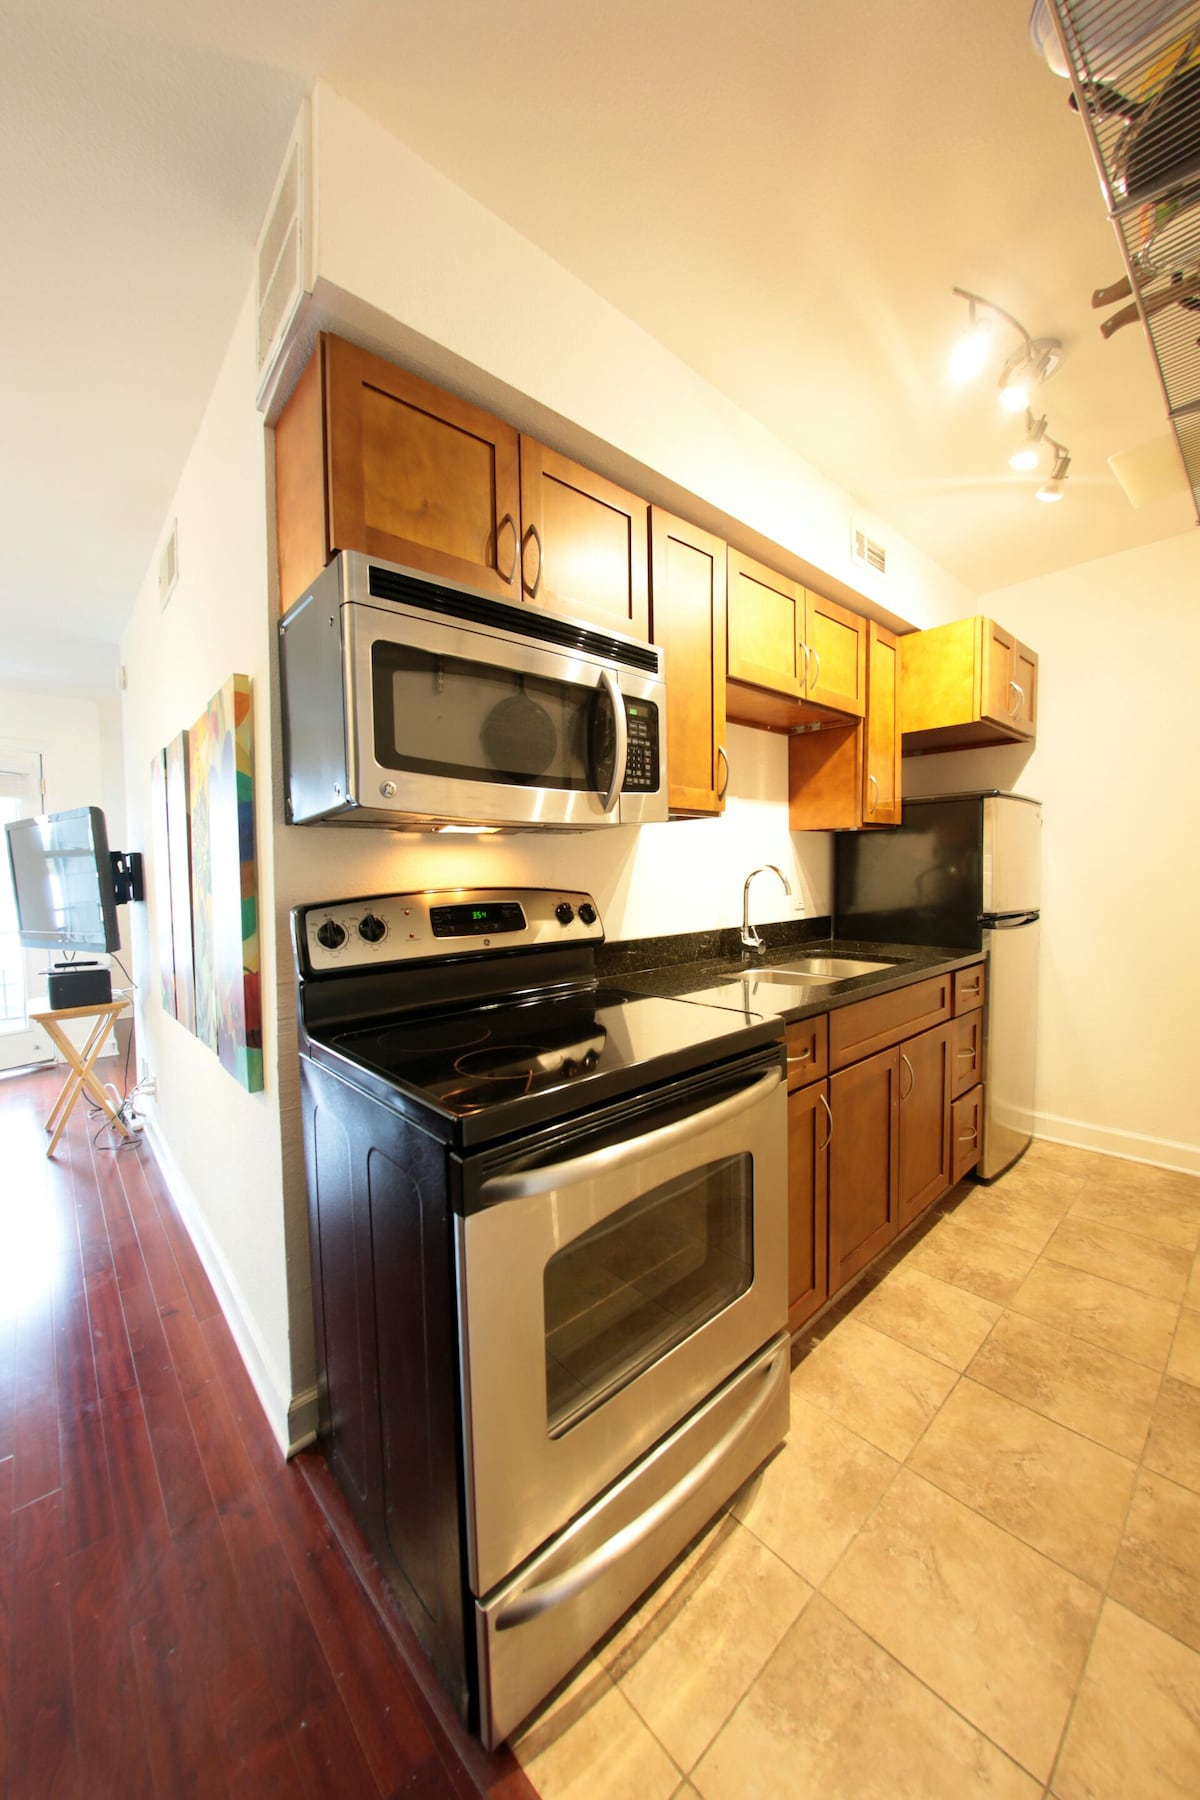 Newish appliances are all shown here and in good working order.  Tile and granite in kitchen and bathroom.